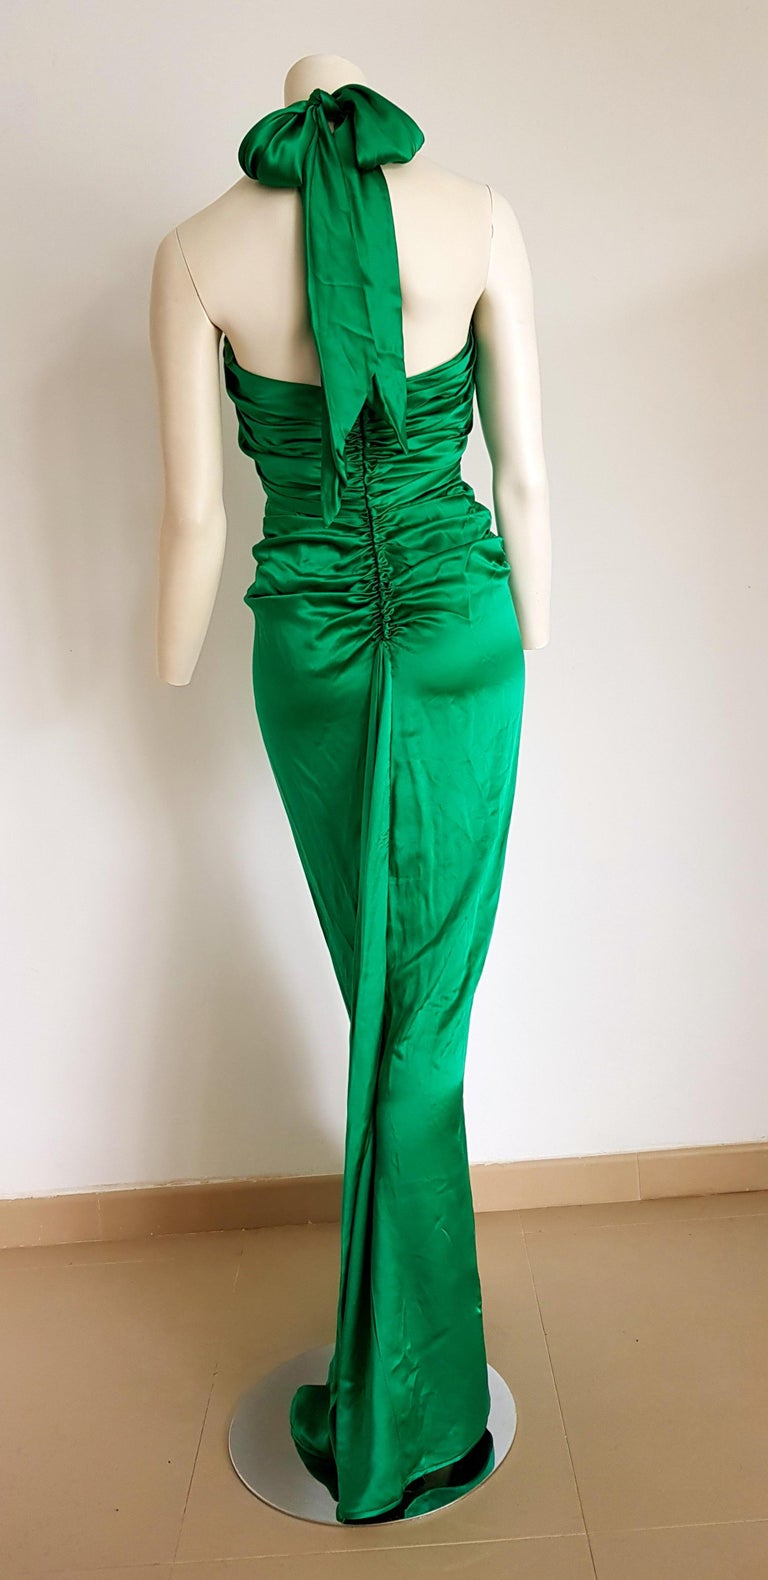 VALENTINO Haute Couture Green Silk Gown Evening Dress - Unworn, New For Sale 1